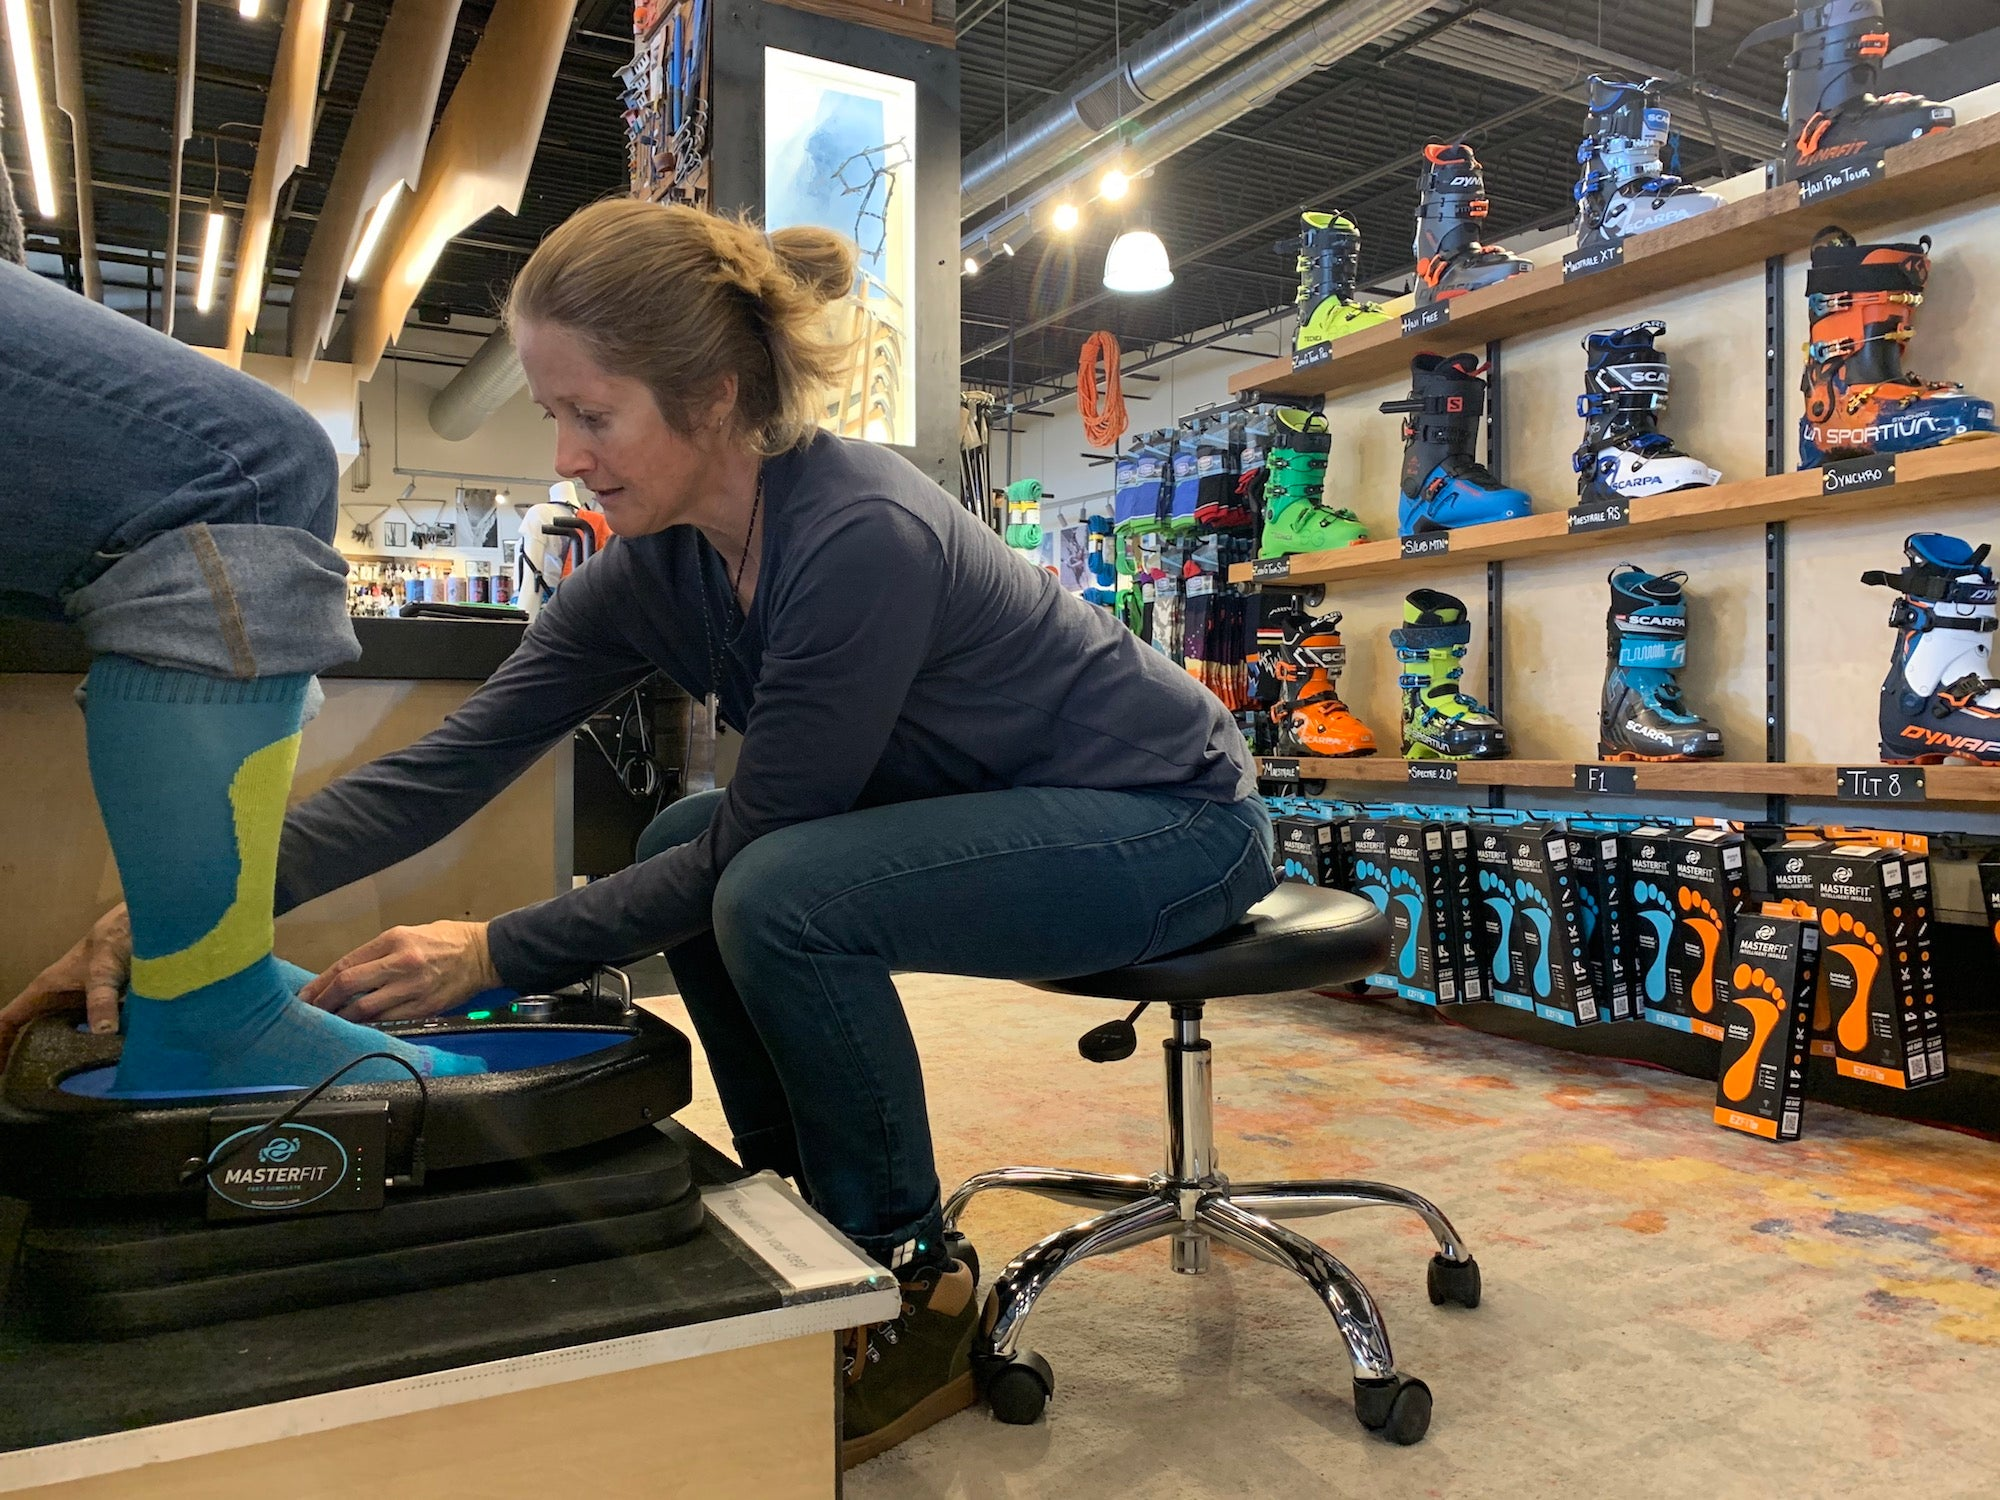 An image of one of our bootfitters molding custom footbeds for a customer. Our bootfitter is sitting on a rolling chair and has ski boots displayed behind her.